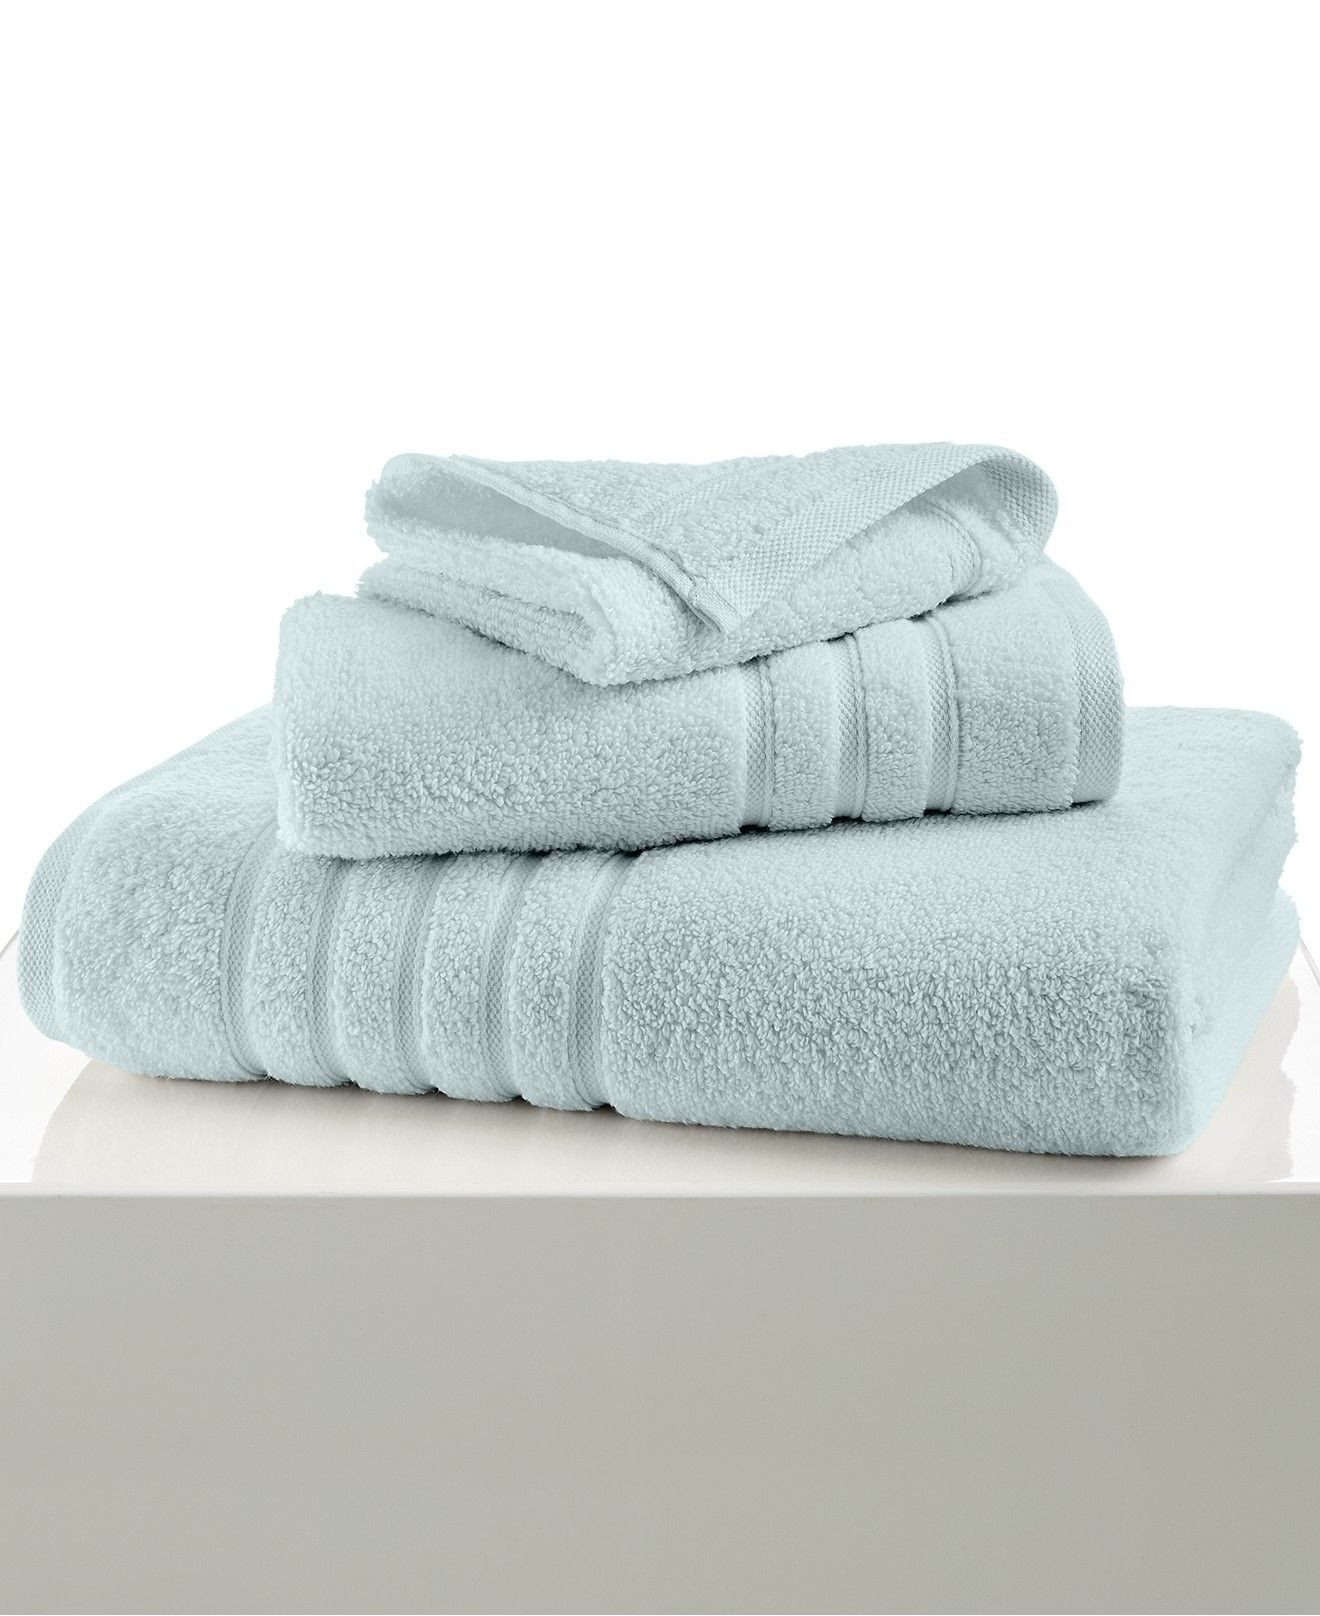 Macys Bath Towels Fascinating Hotel Collection Ultimate Microcotton Bath Towel Collection 100 Review